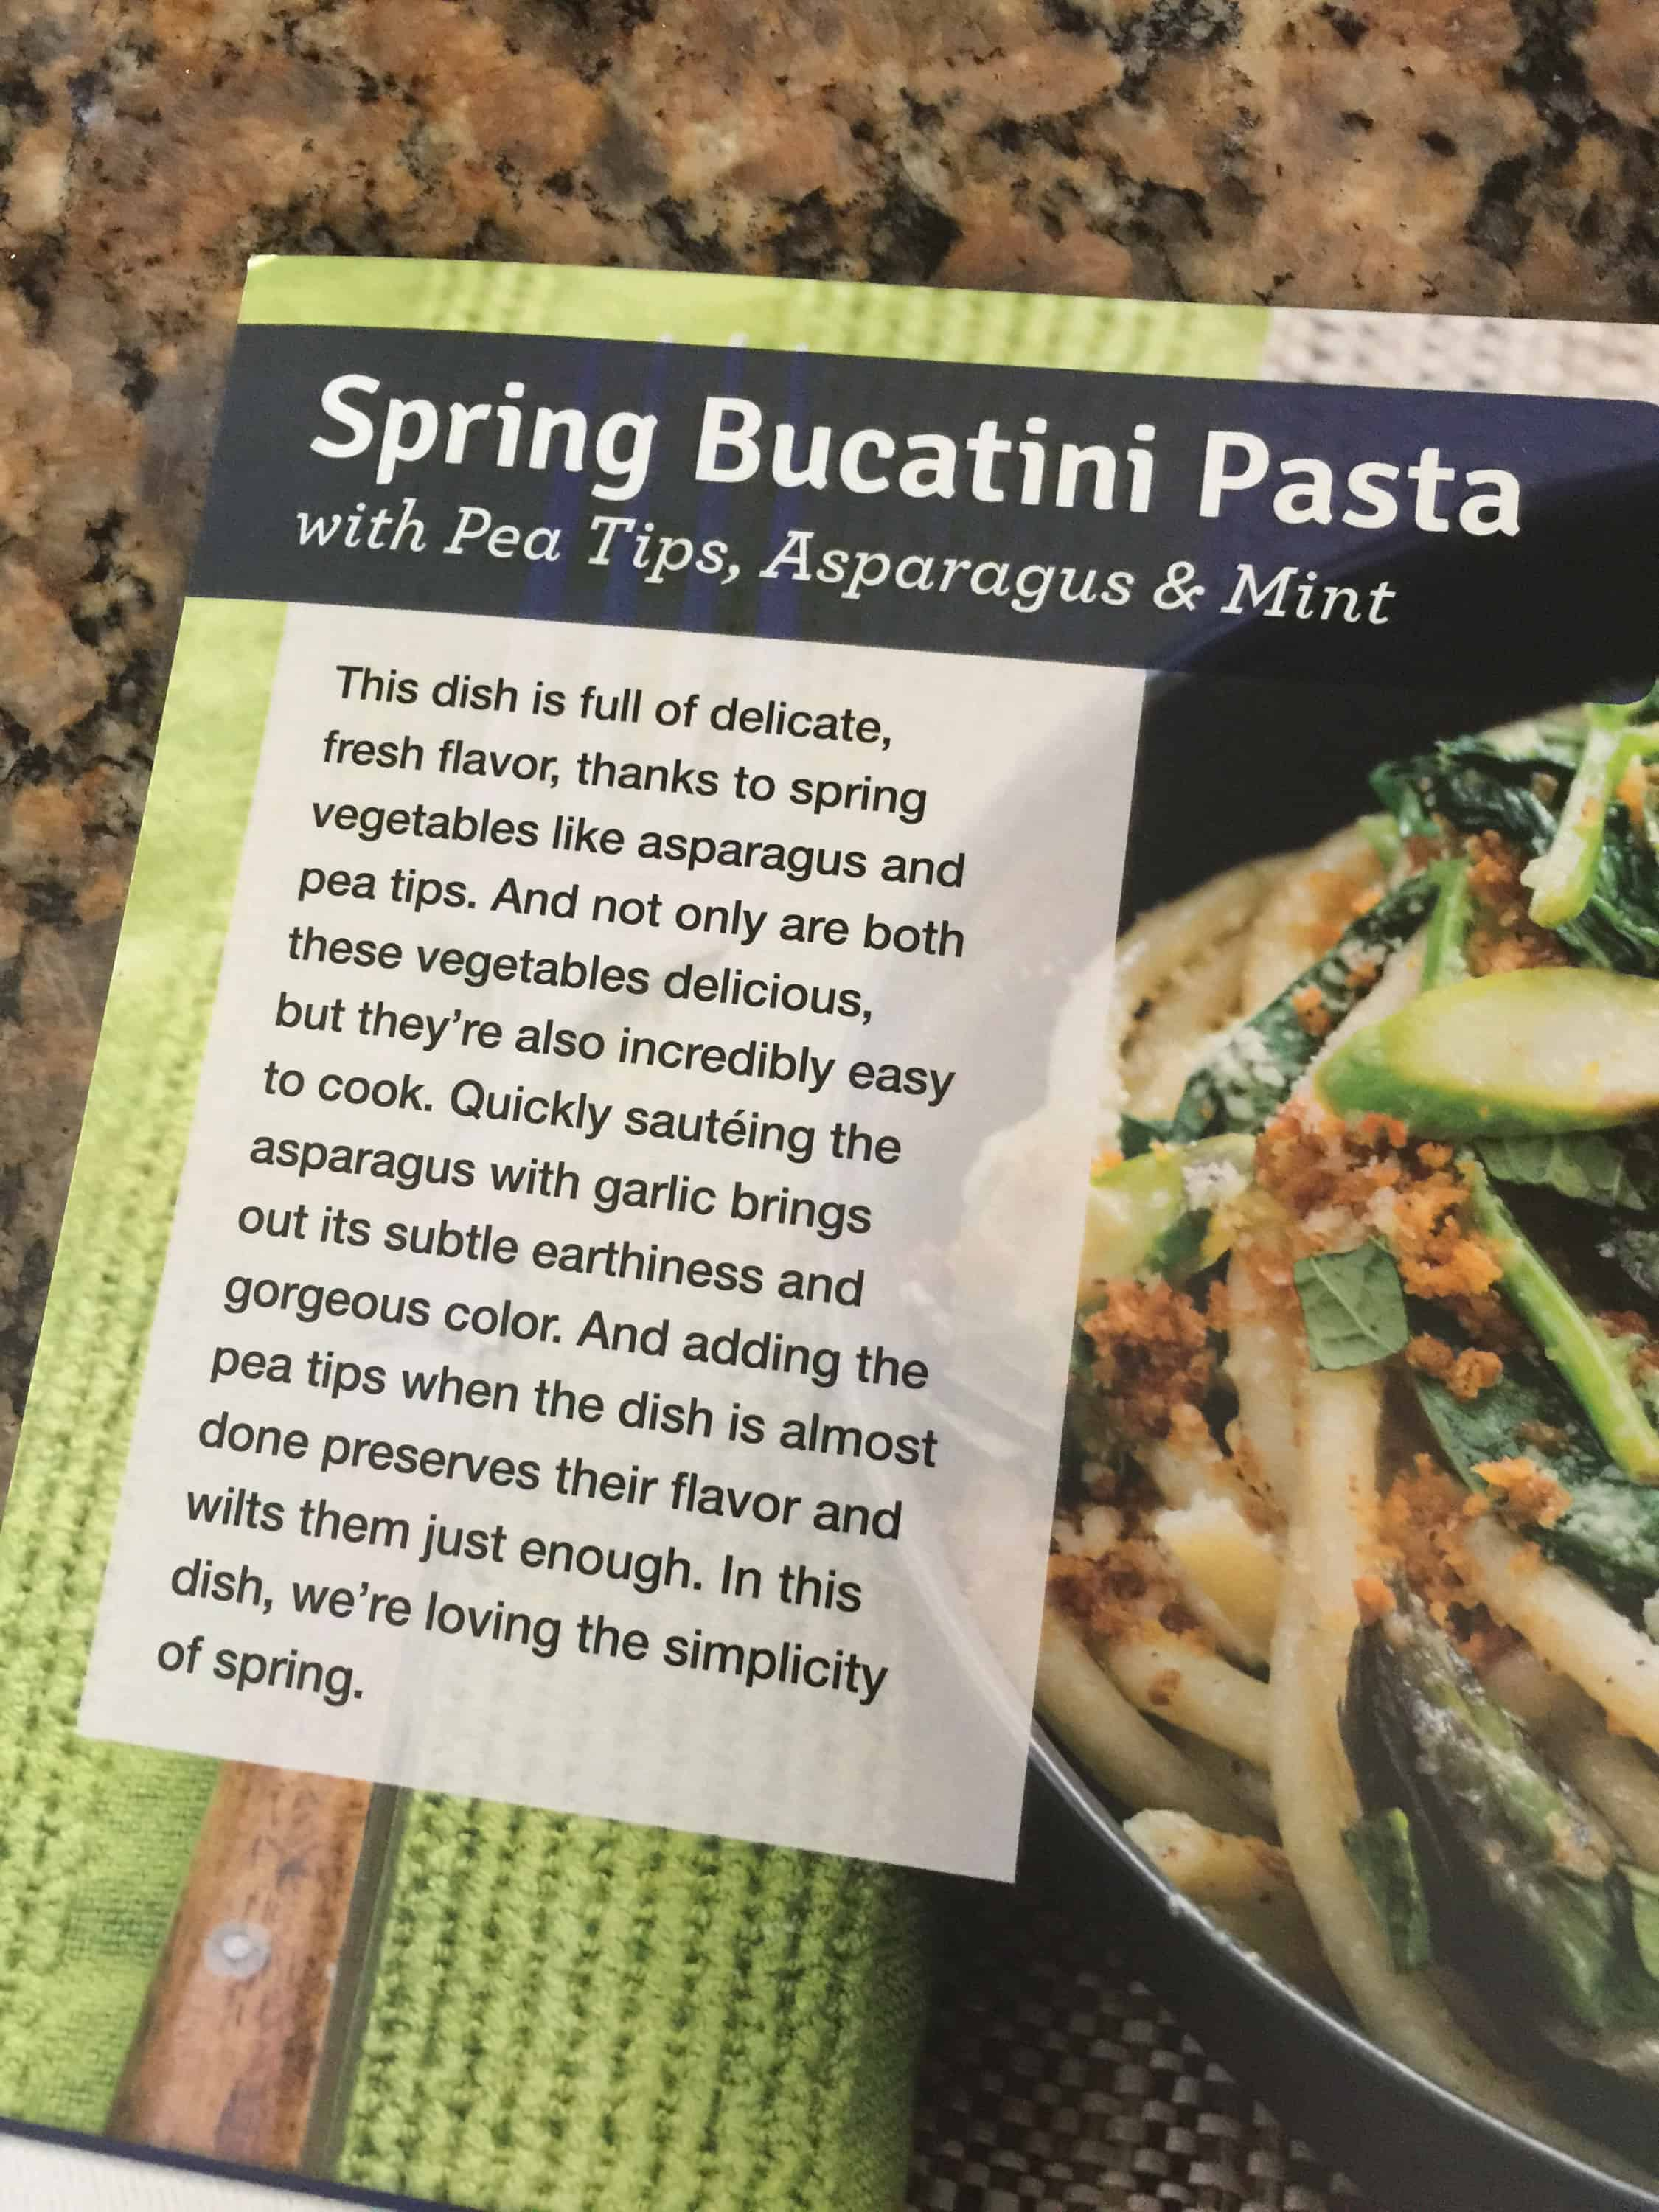 Blue apron working conditions - Spring Bucatini Pasta W Pea Tips Asparagus Mint